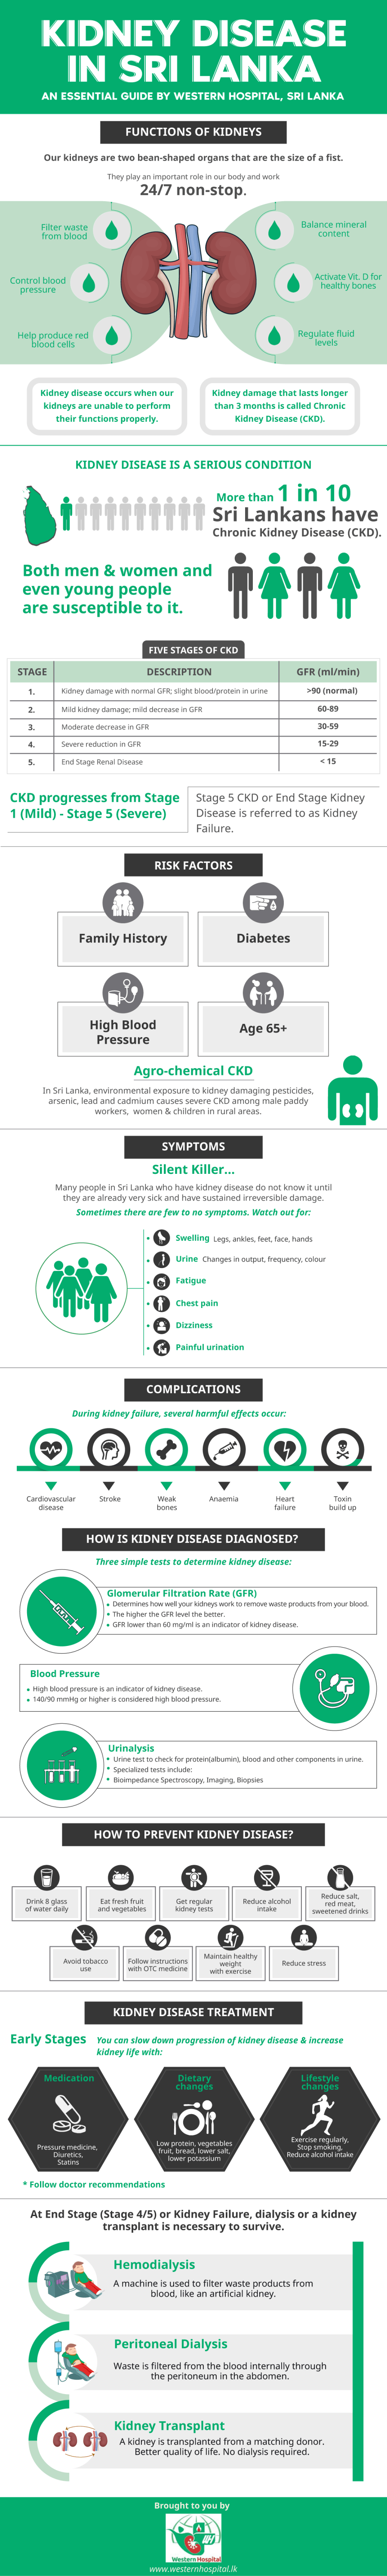 Kidney Disease in Sri Lanka Infographic